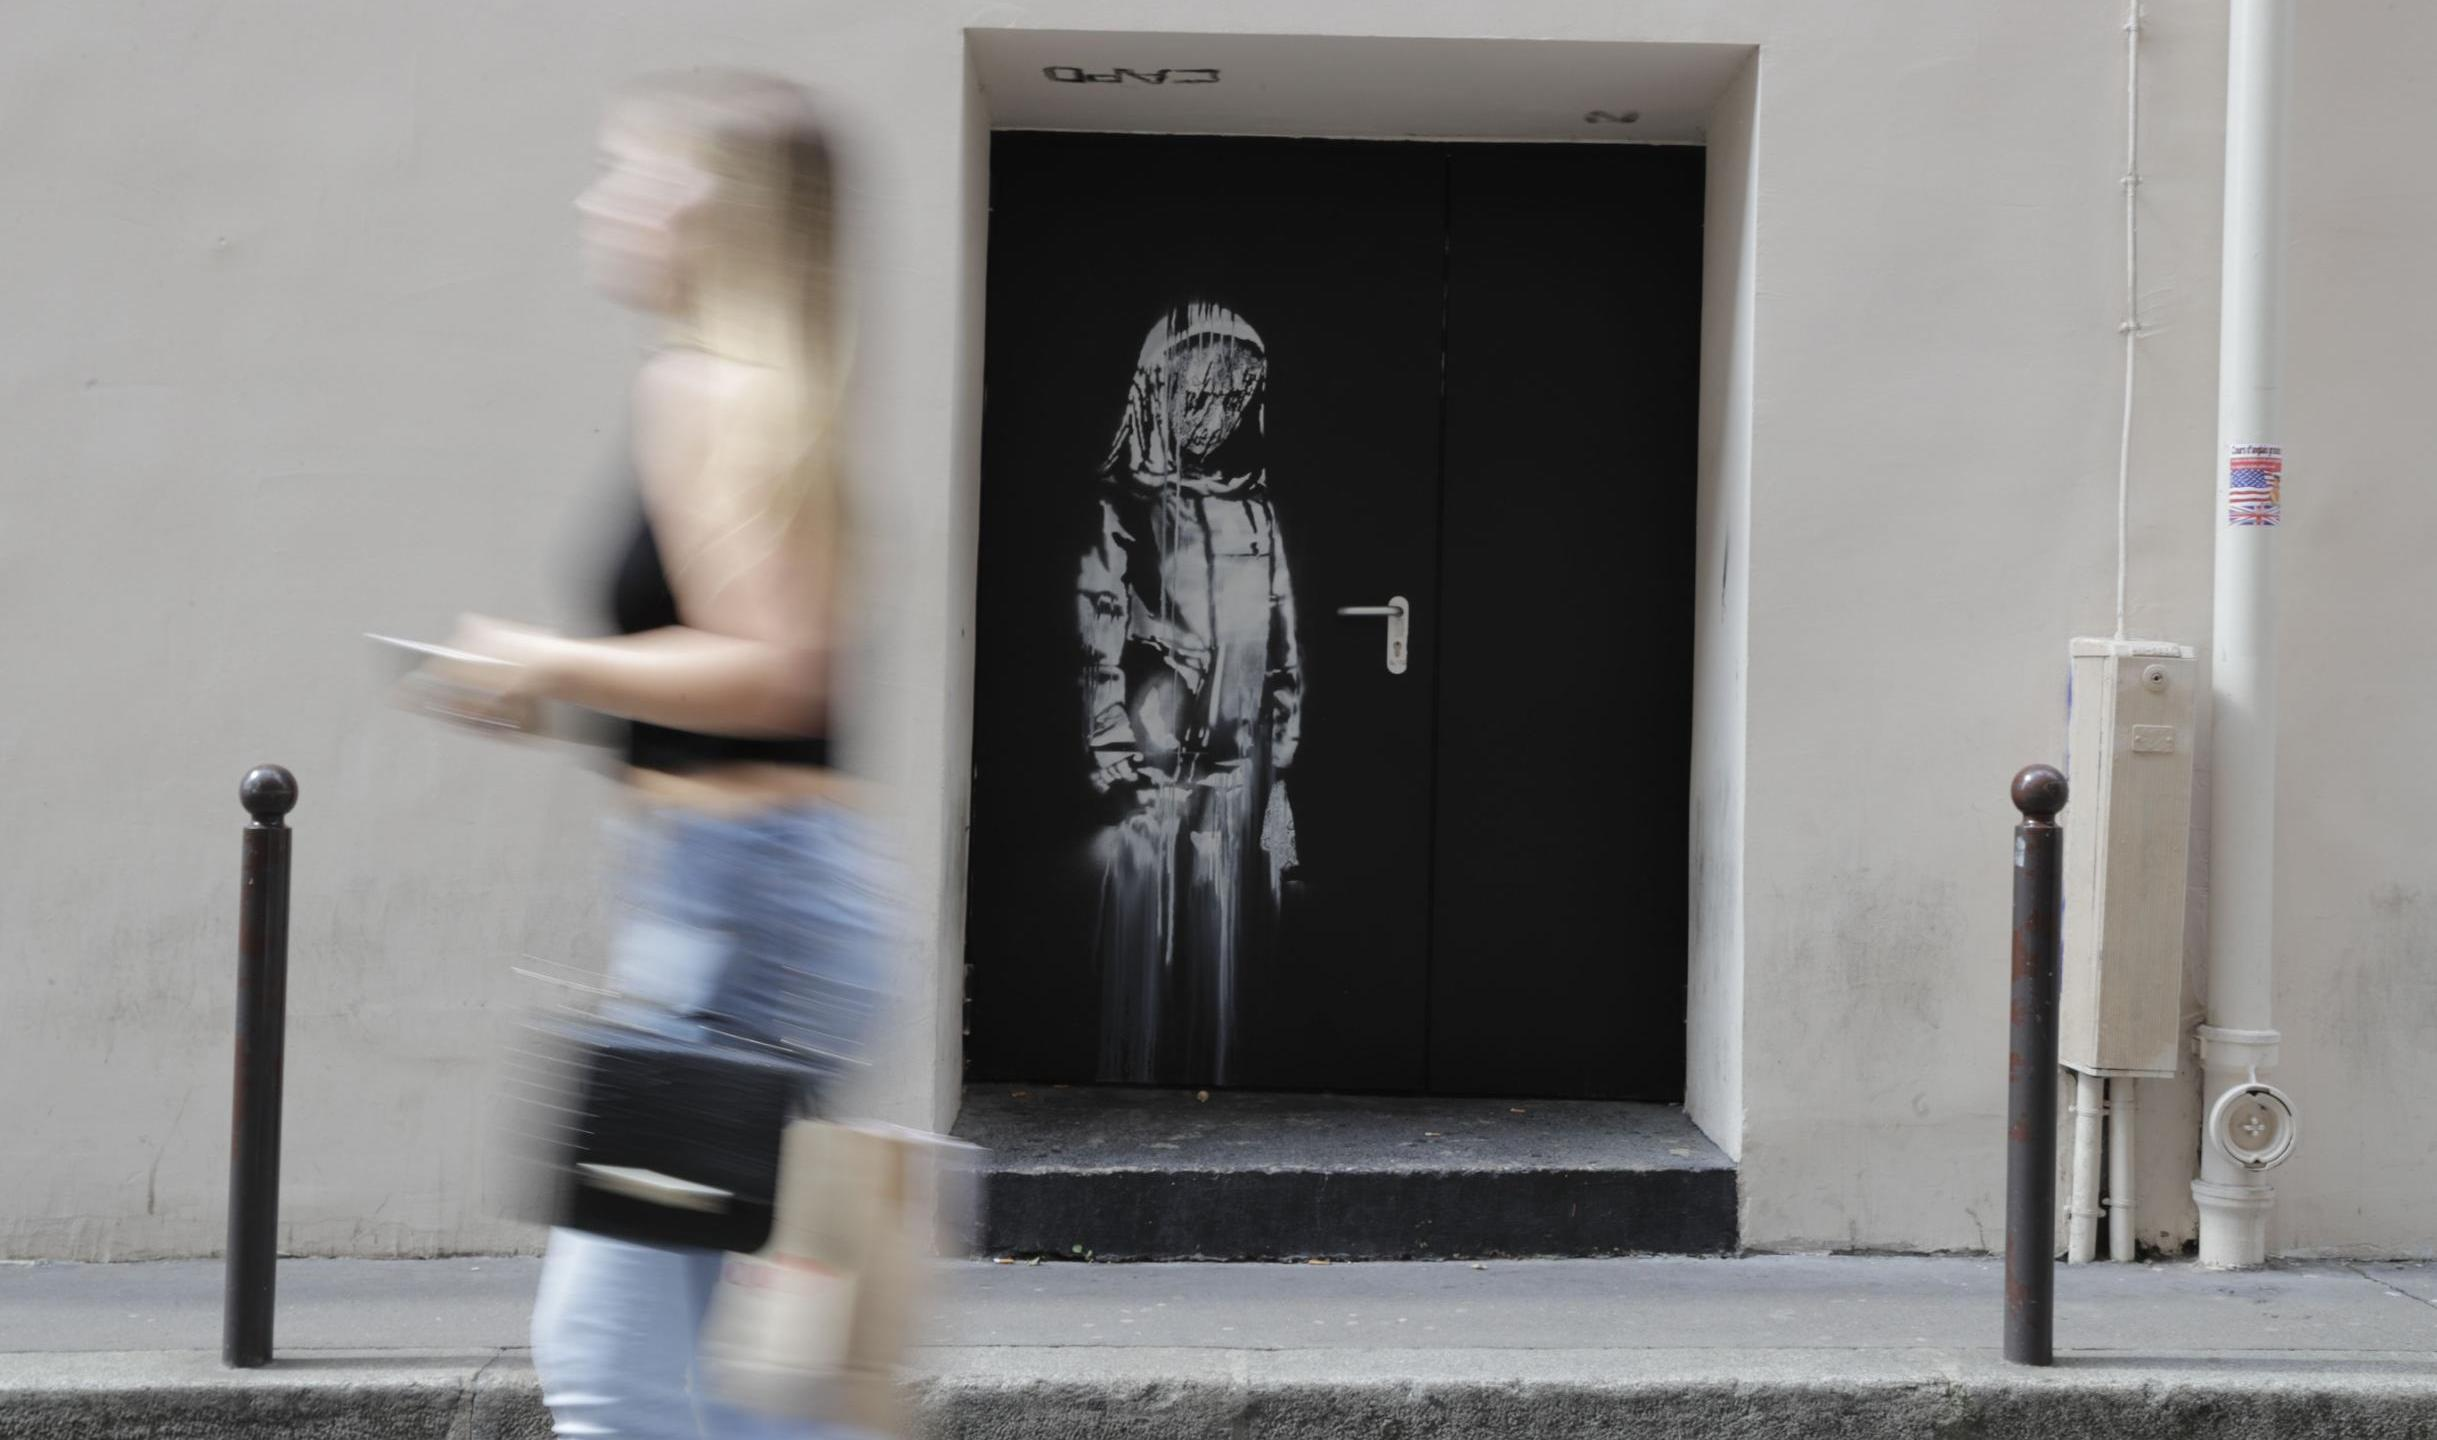 The Banksy artwork, seen here in June 2018, was on a side door of the Bataclan concert hall. (THOMAS SAMSON/AFP/AFP/Getty Images)